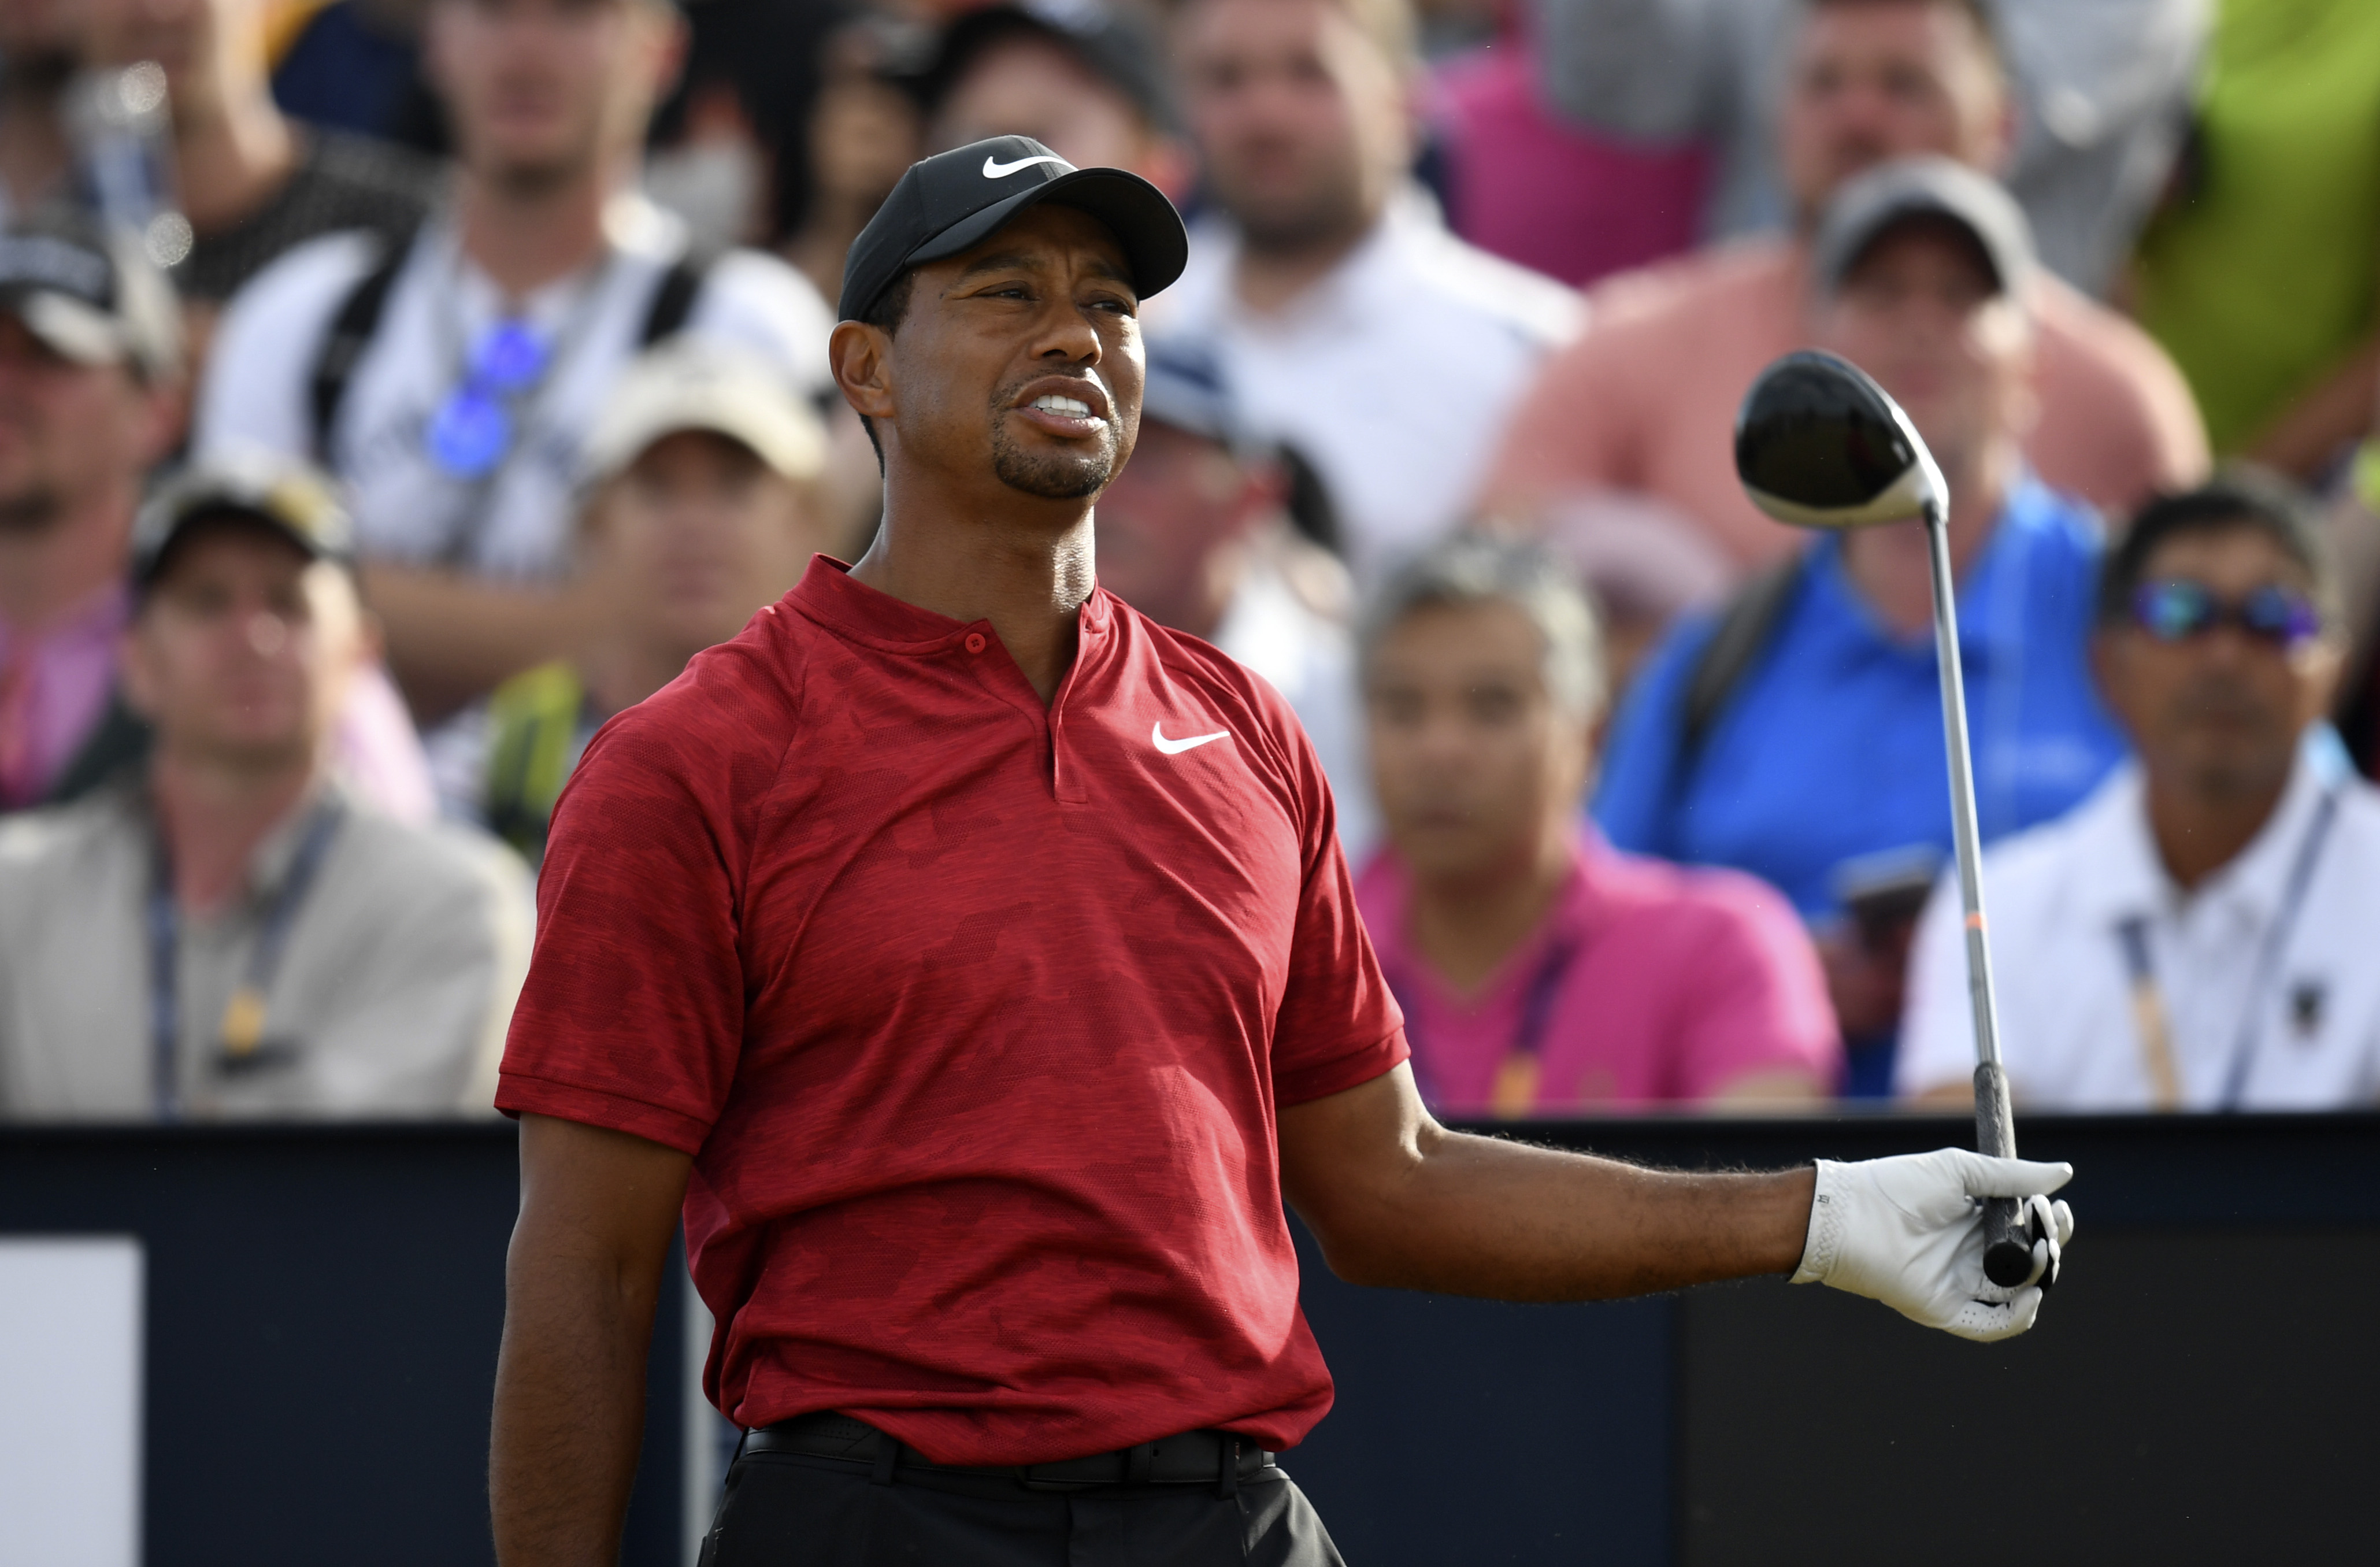 Jul 22, 2018; Carnoustie, Angus, SCT; Tiger Woods reacts to a heckler in the crowd during his swing of his tee shot on the 18th during the final round of The Open Championship golf tournament at Carnoustie Golf Links. Mandatory Credit: Thomas J. Russo-USA TODAY Sports